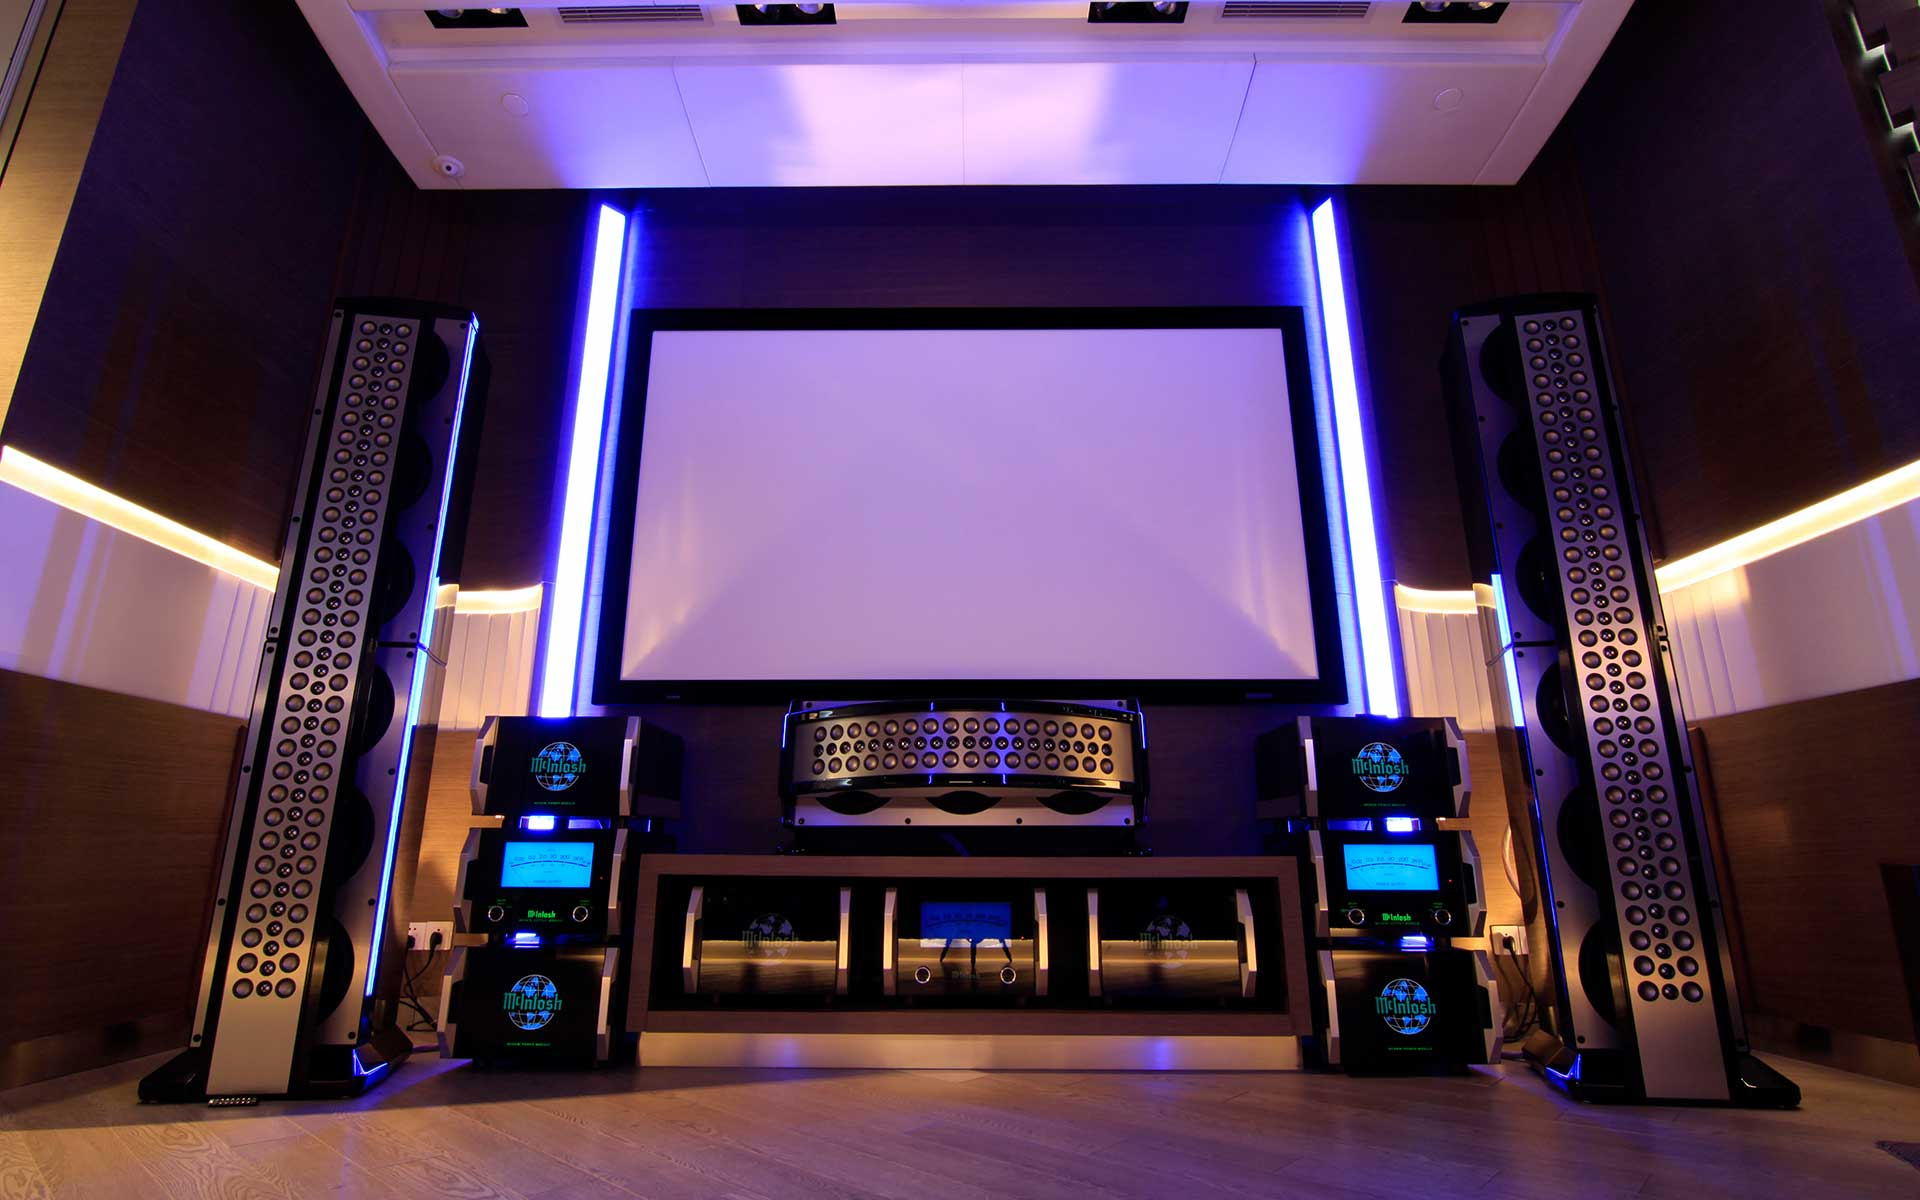 mcintosh reference home theater system. Black Bedroom Furniture Sets. Home Design Ideas